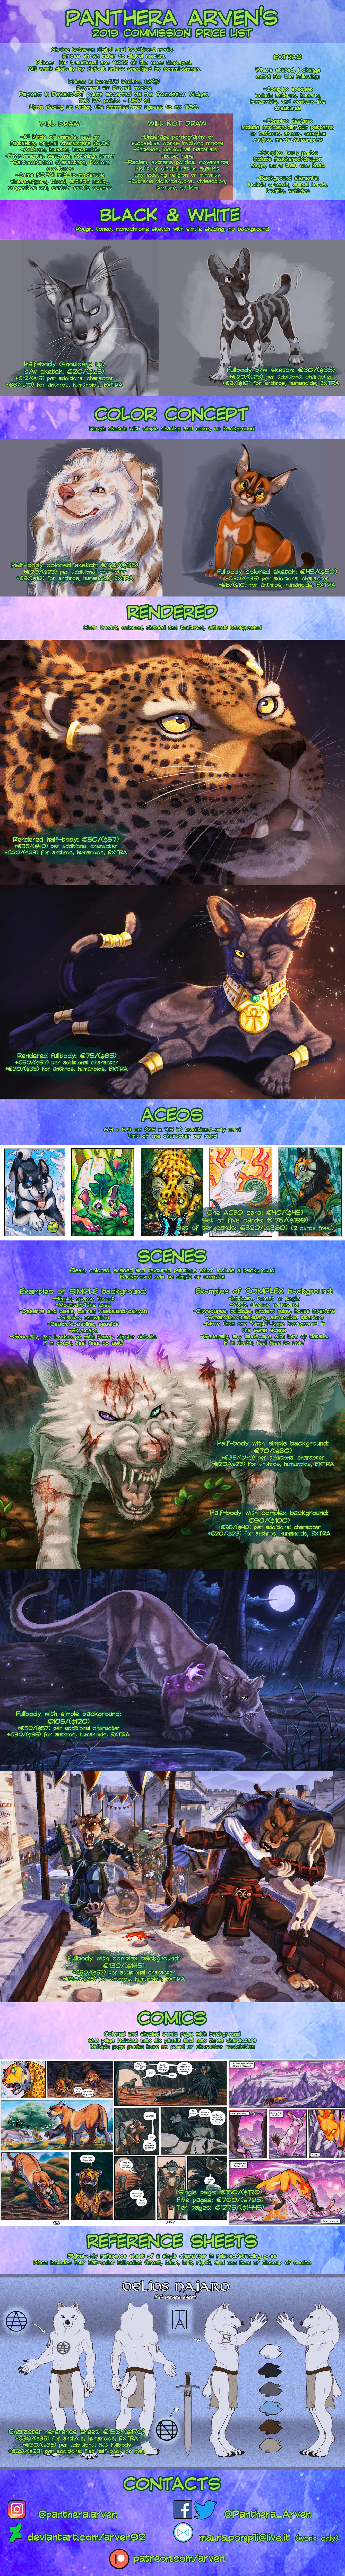 Arven's 2019 Commission Price Sheet